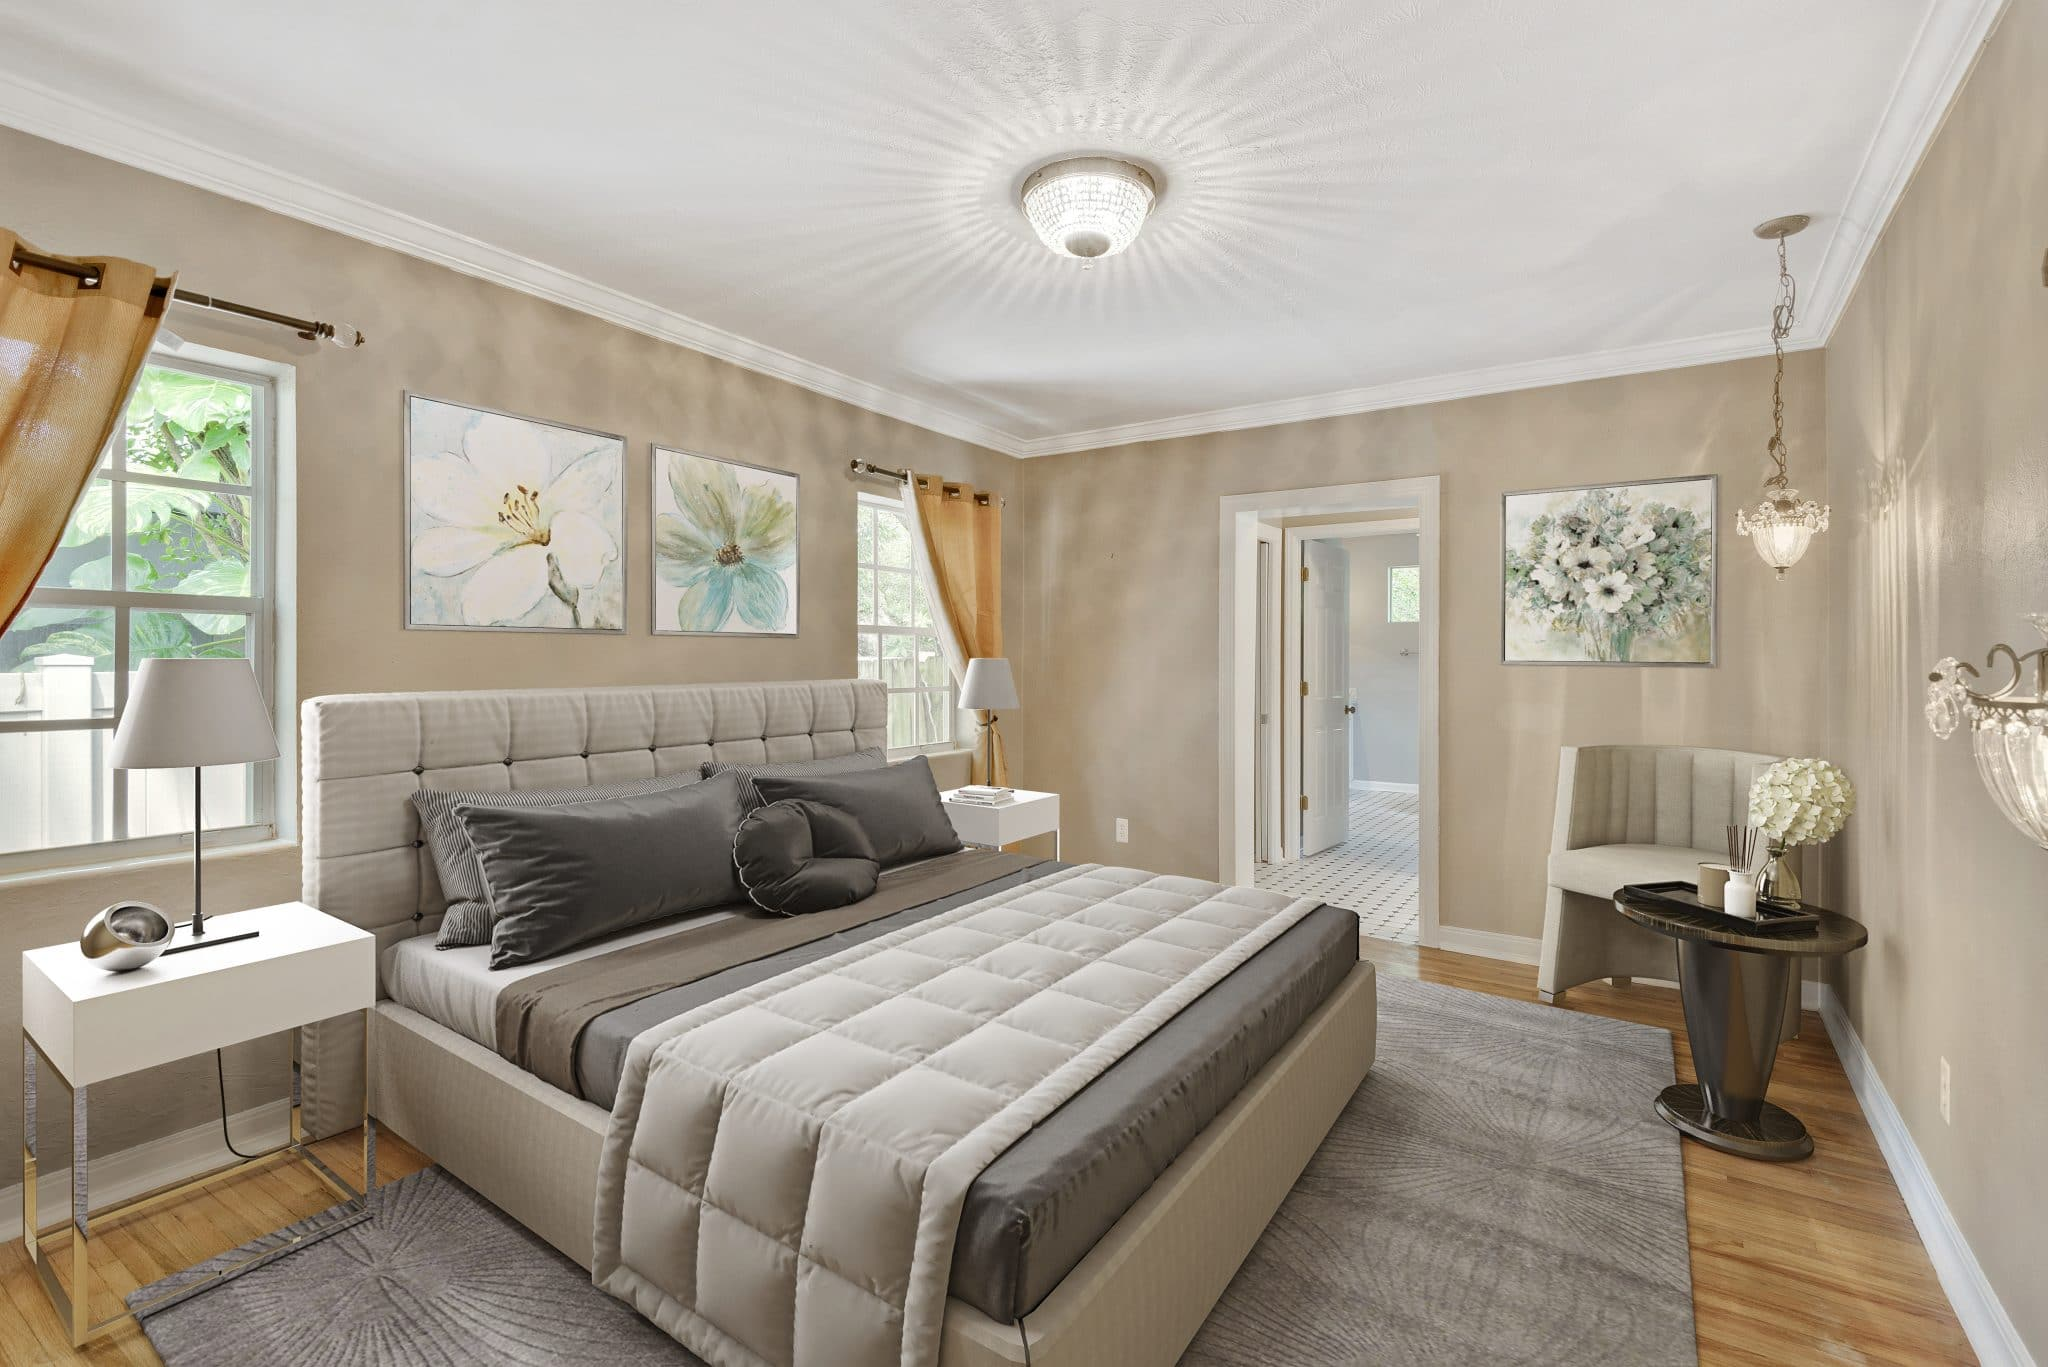 Bedroom virtually staged by MHM Professional Staging